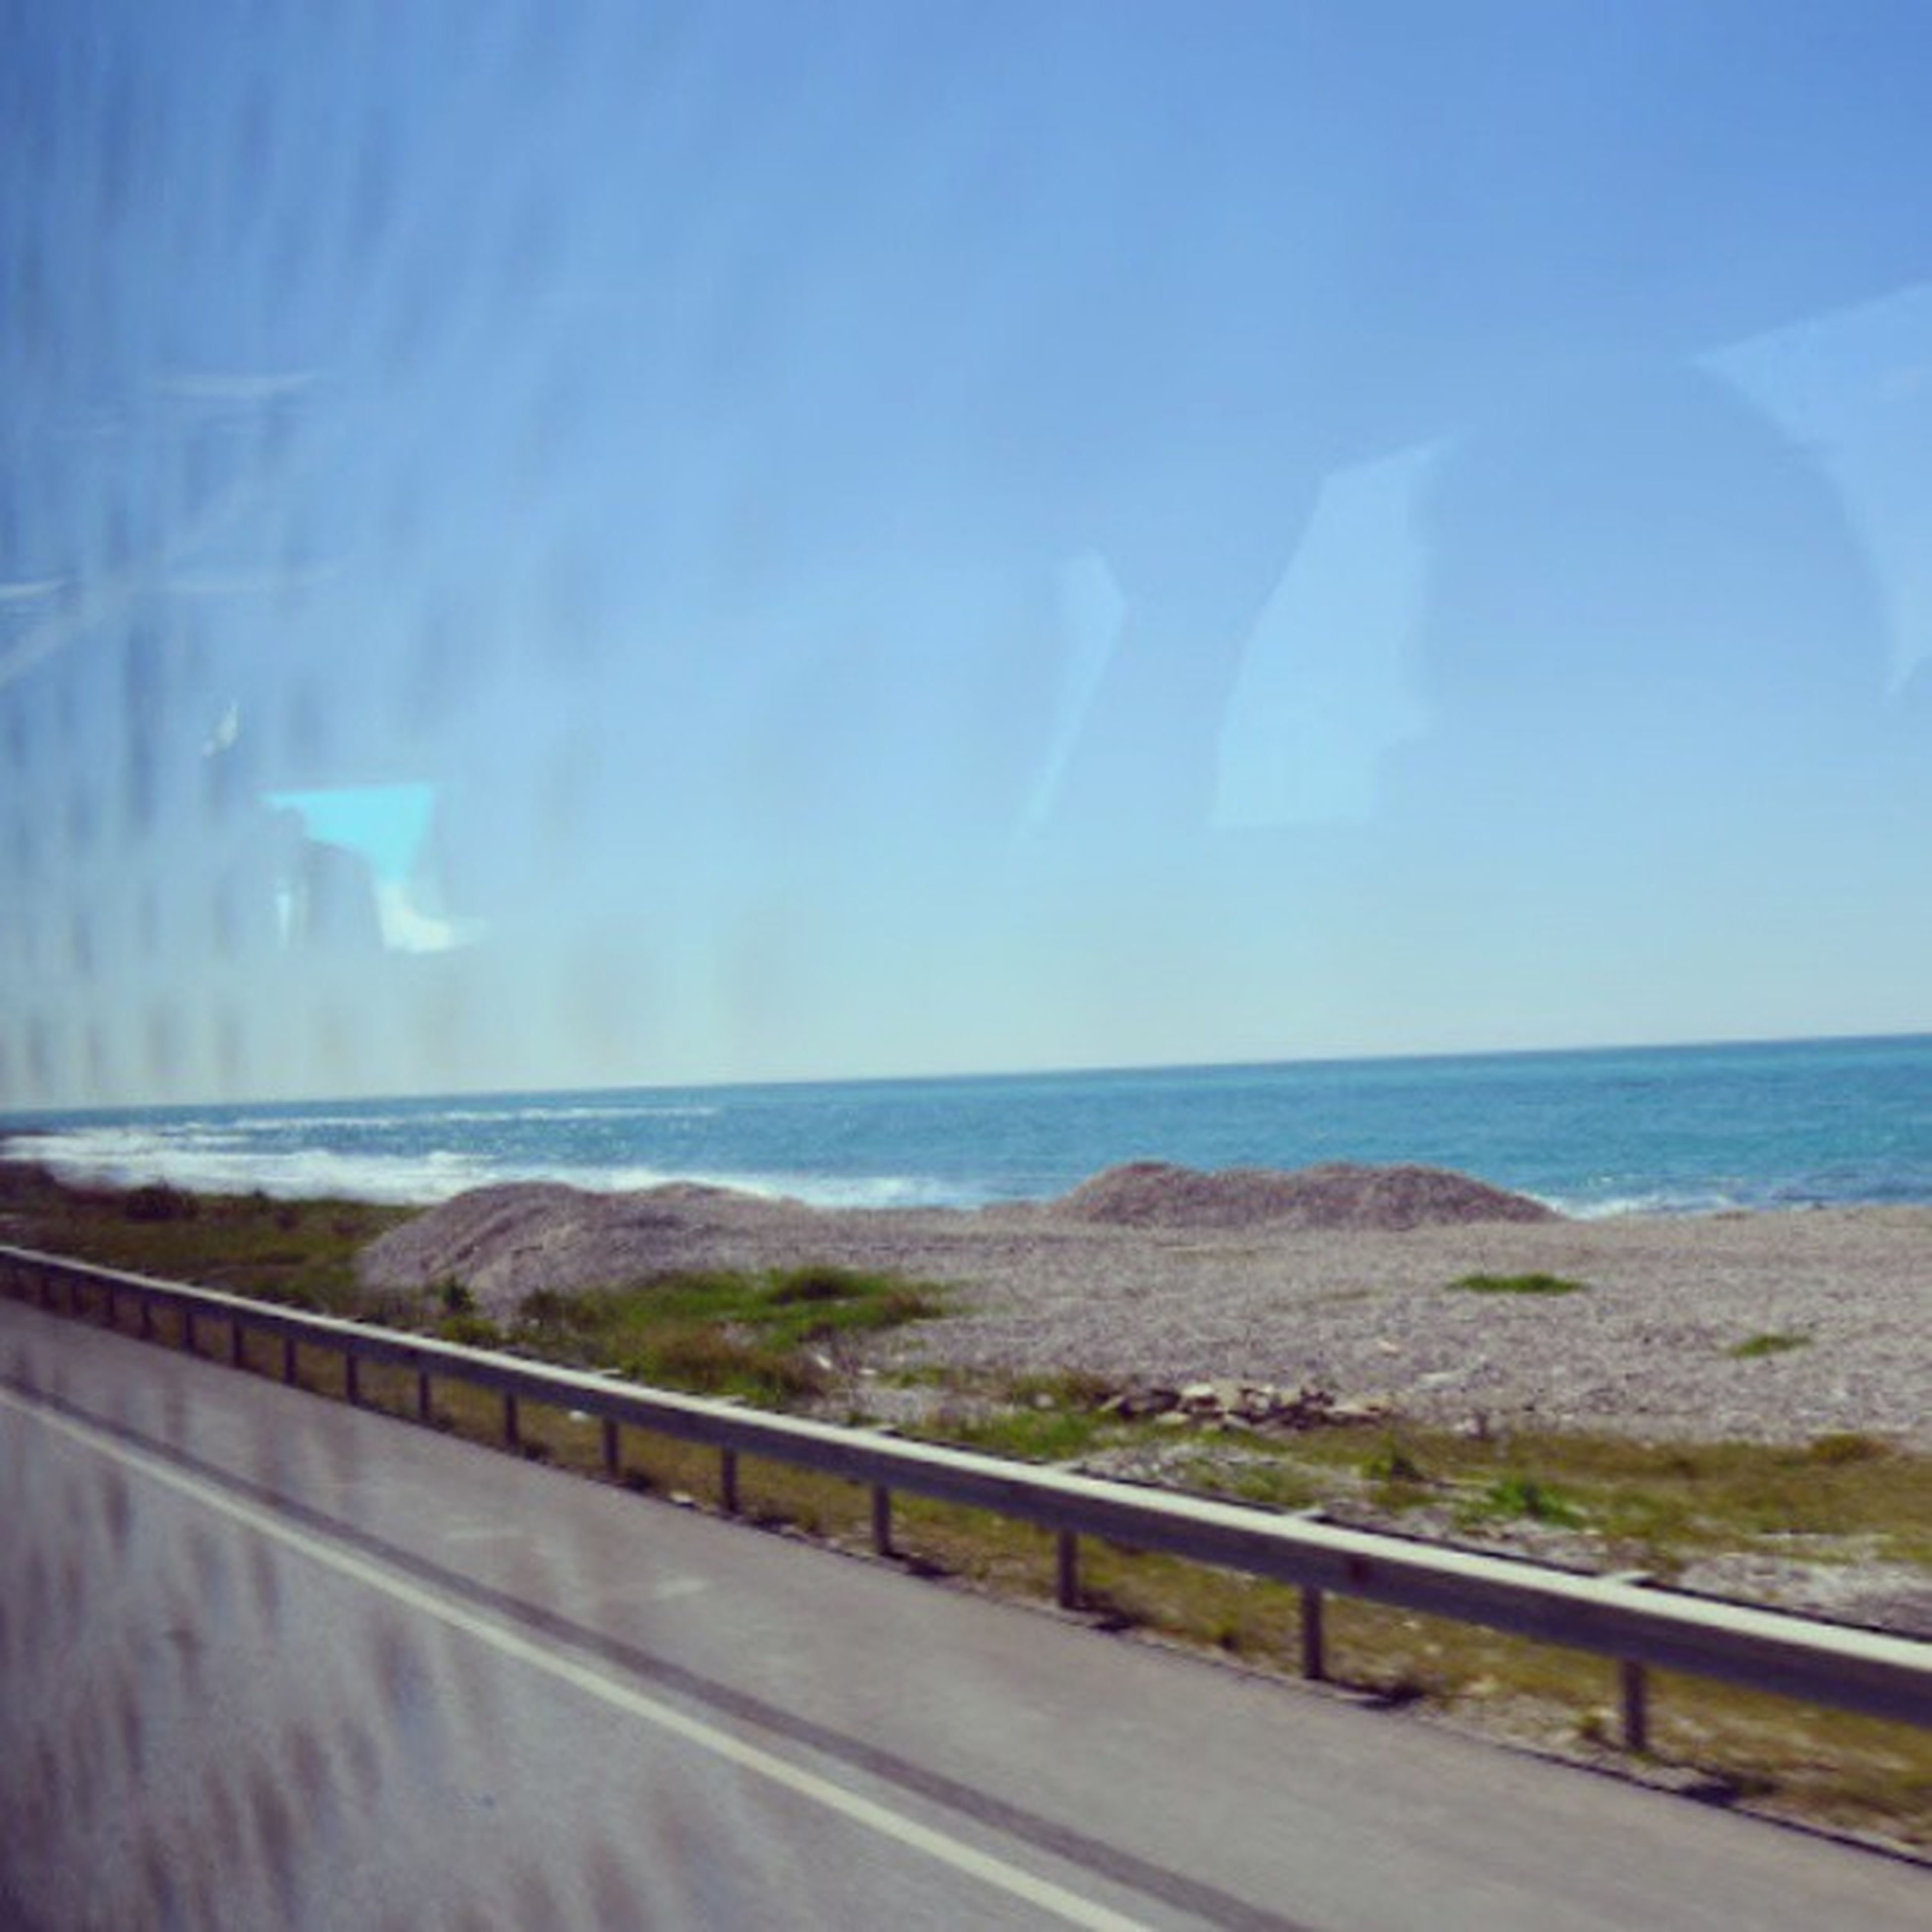 water, sea, horizon over water, sky, blue, scenics, beauty in nature, tranquil scene, nature, tranquility, transportation, transparent, road, idyllic, beach, glass - material, day, no people, railing, outdoors